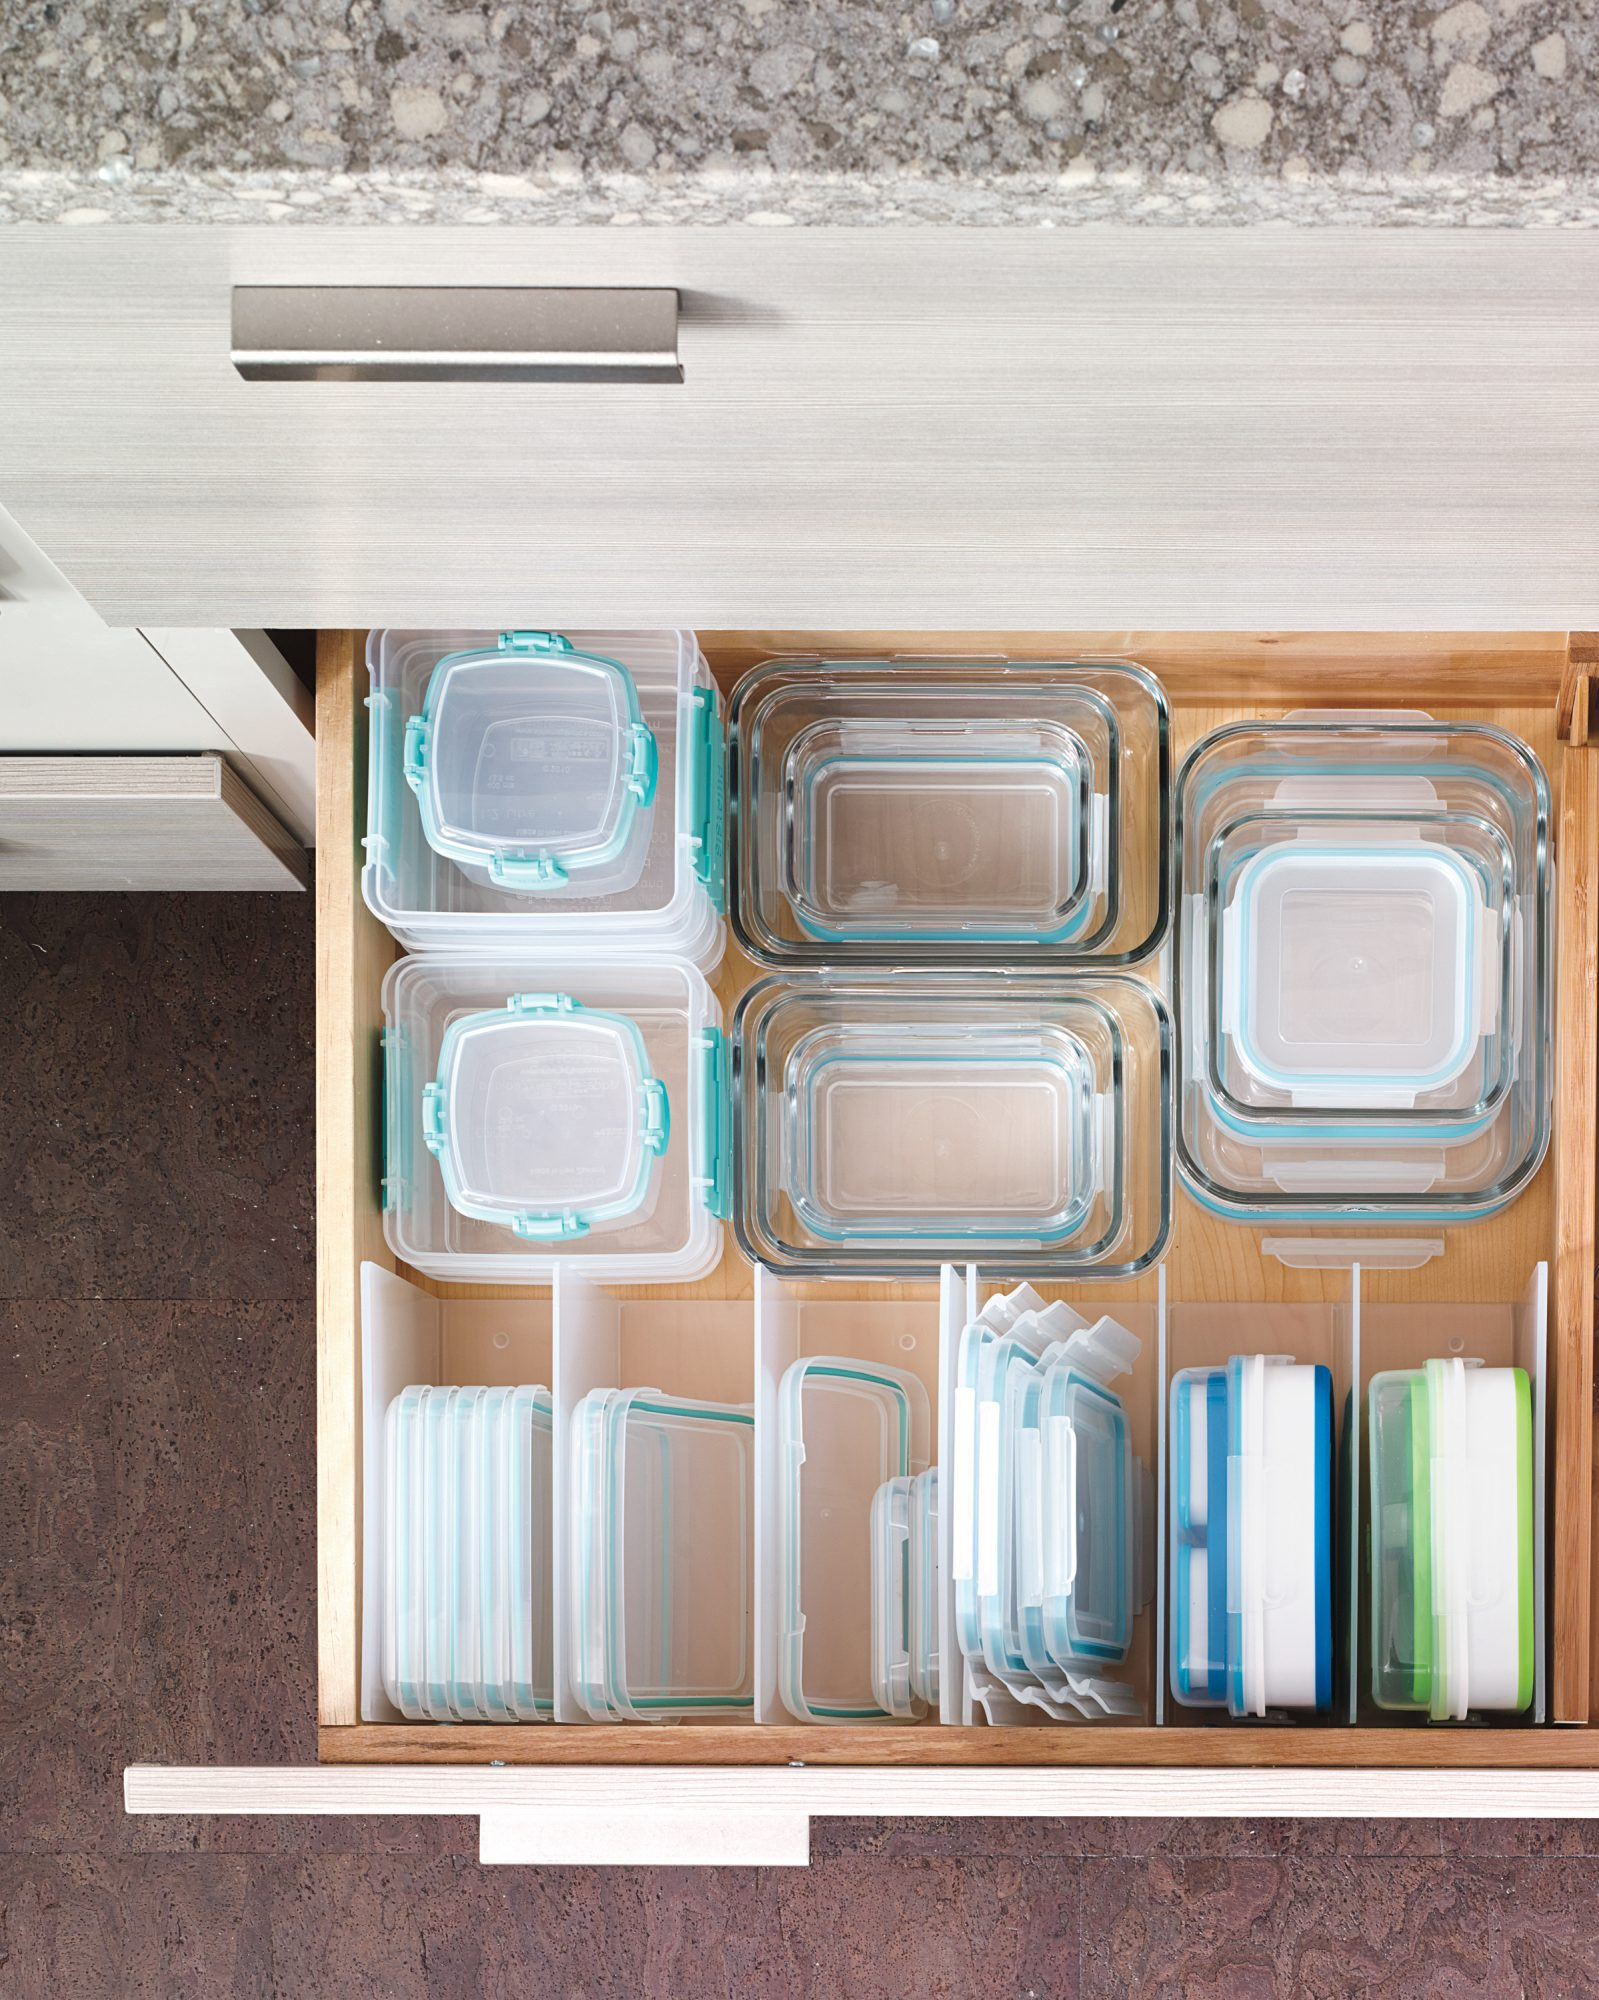 The Kitchen: Remove Mismatched Food Canisters